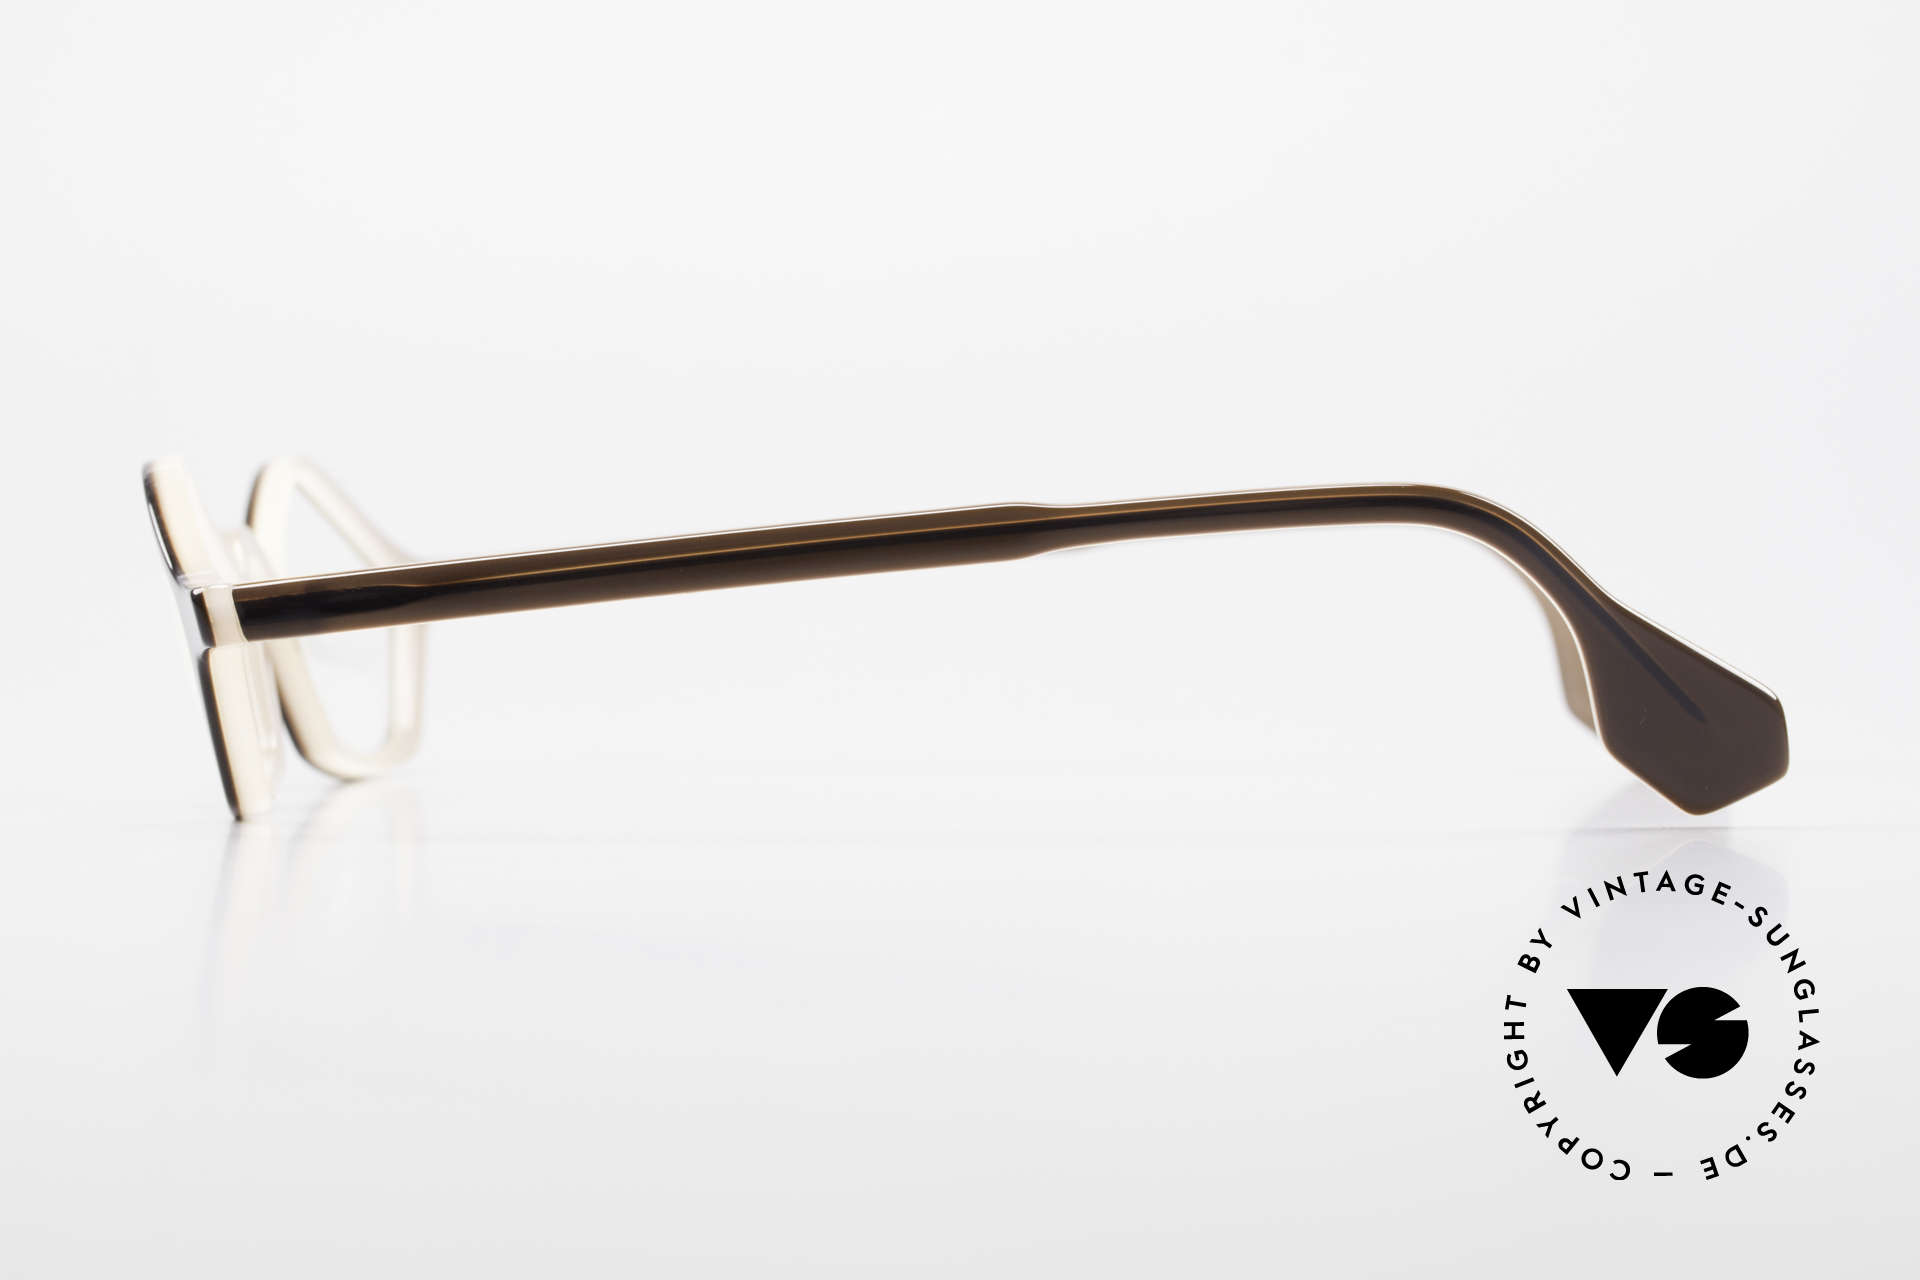 Theo Belgium Polygone Geometrical Plastic Eyeglasses, fancy geometrical (polygon) plastic frame in SMALL size, Made for Men and Women